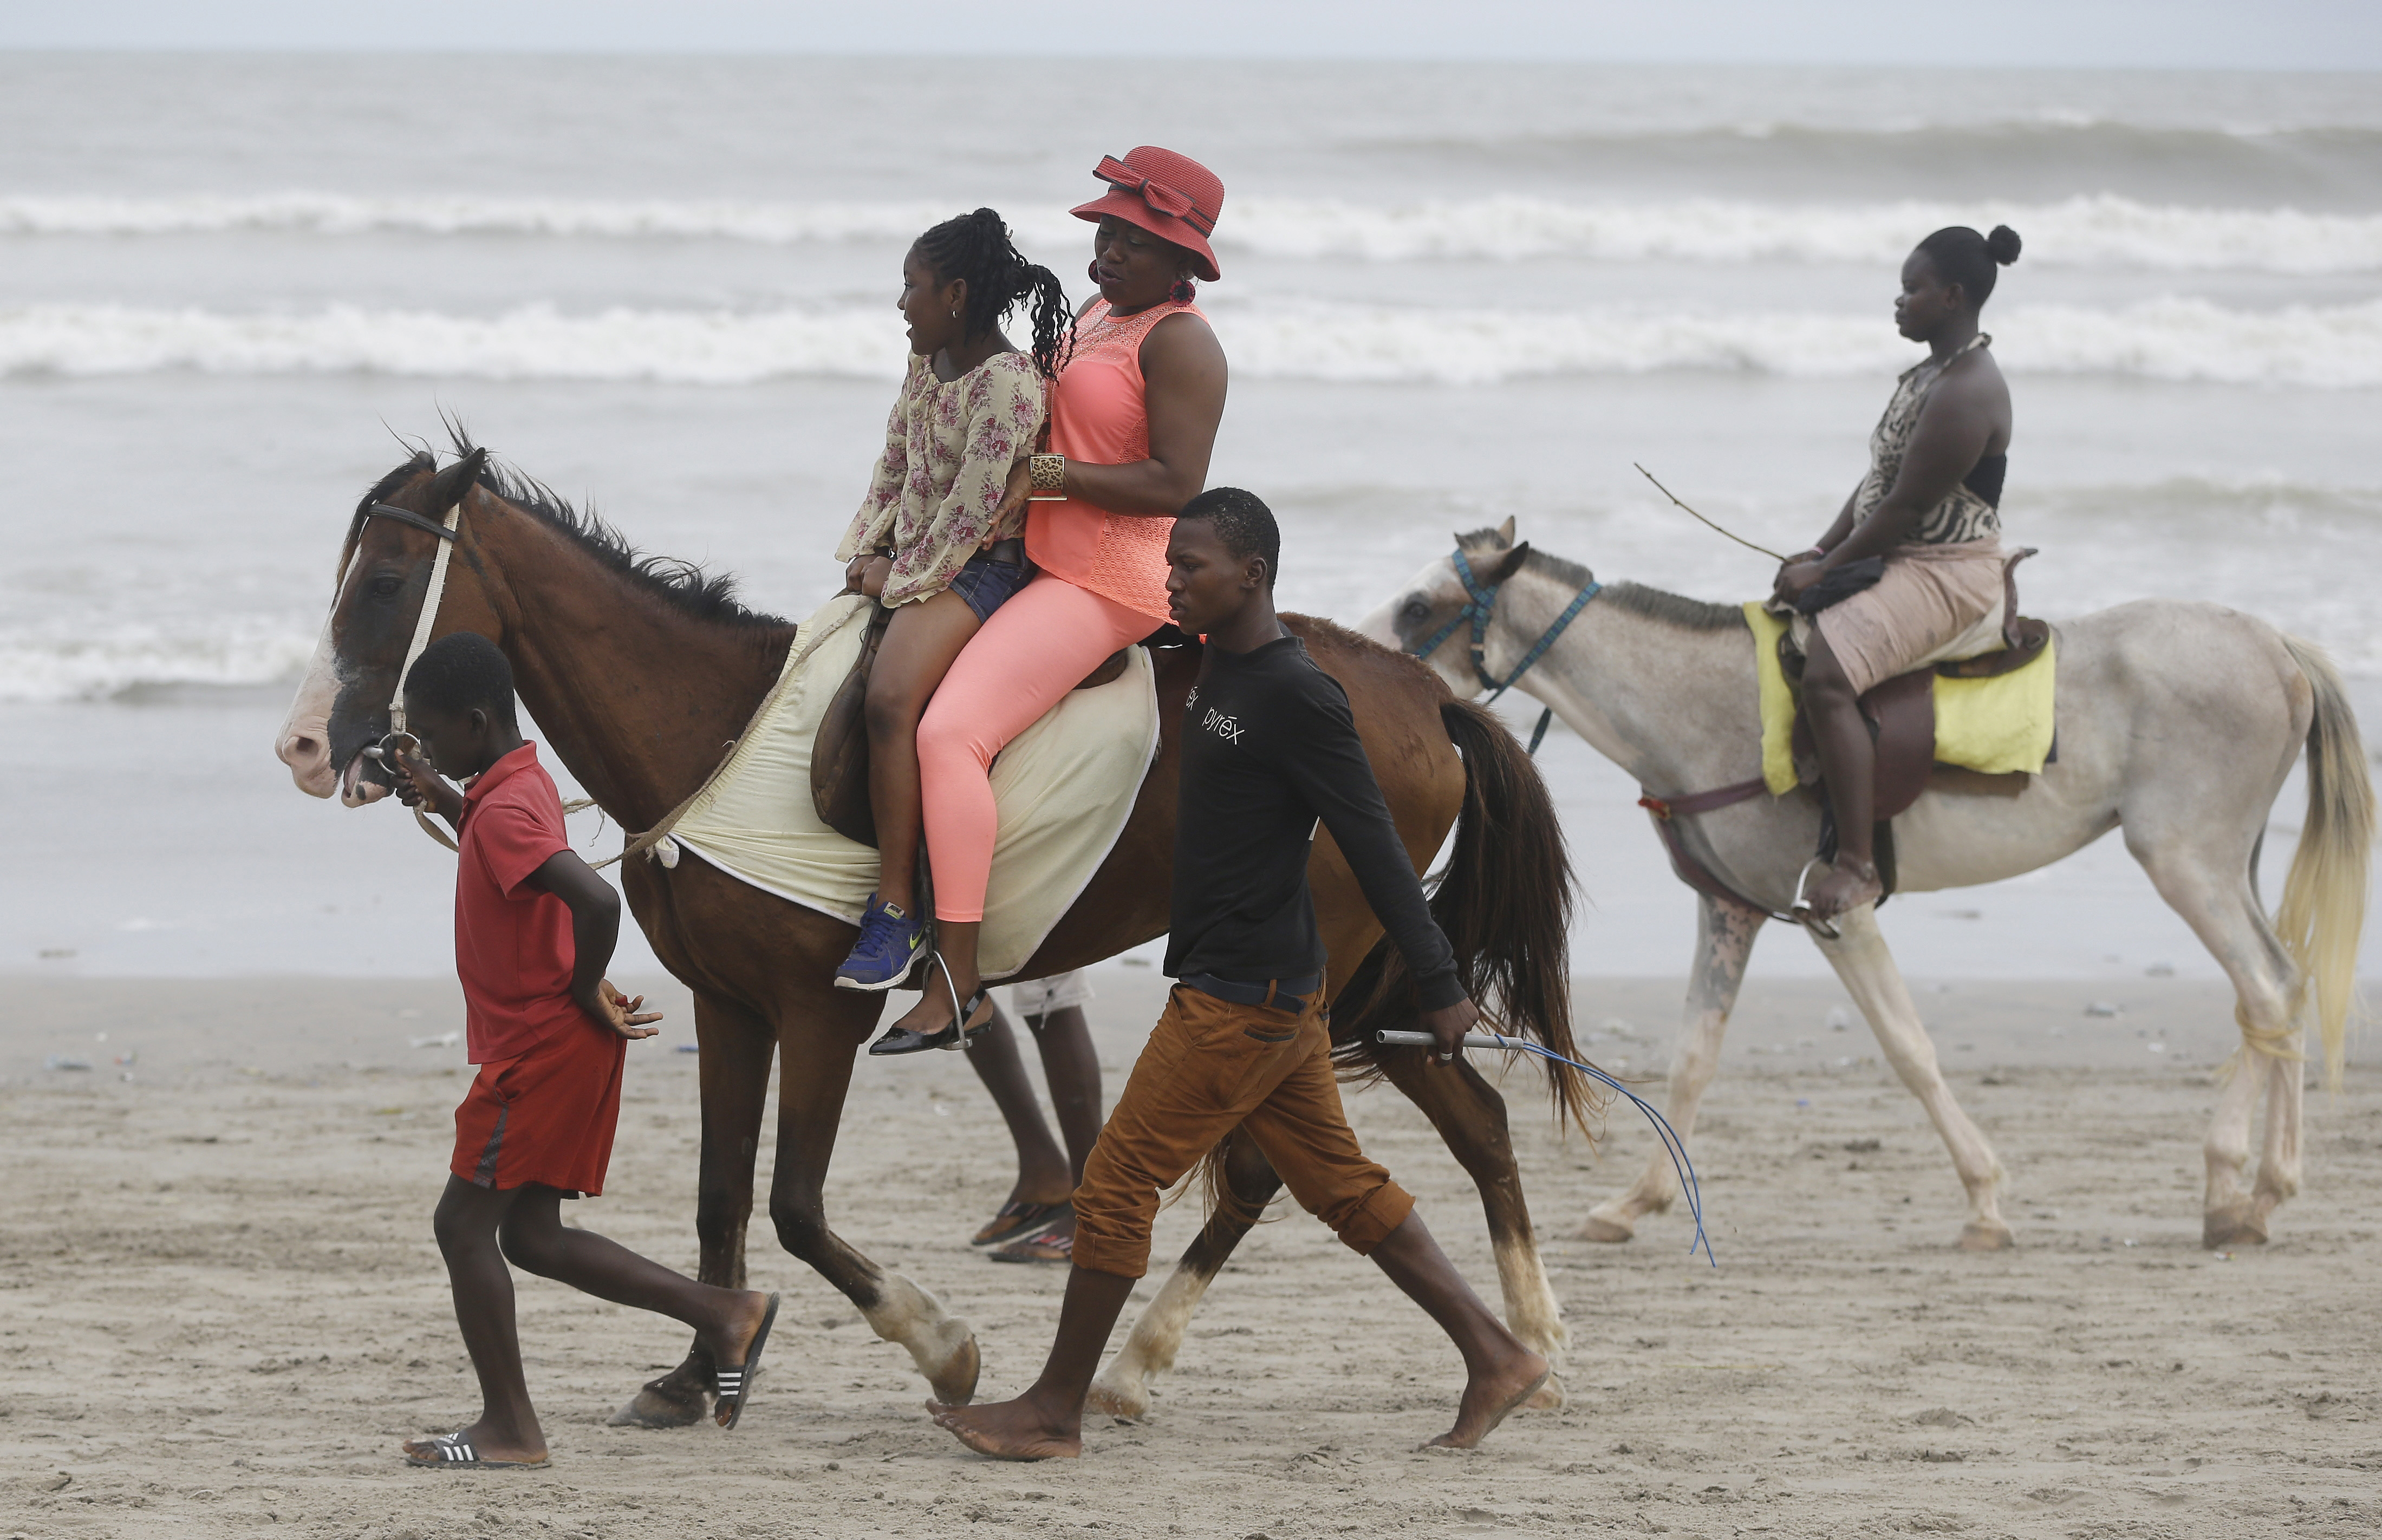 "<div class=""meta image-caption""><div class=""origin-logo origin-image ap""><span>AP</span></div><span class=""caption-text"">Ghanaians ride on horse back on the beach in Accra, Ghana. (AP)</span></div>"